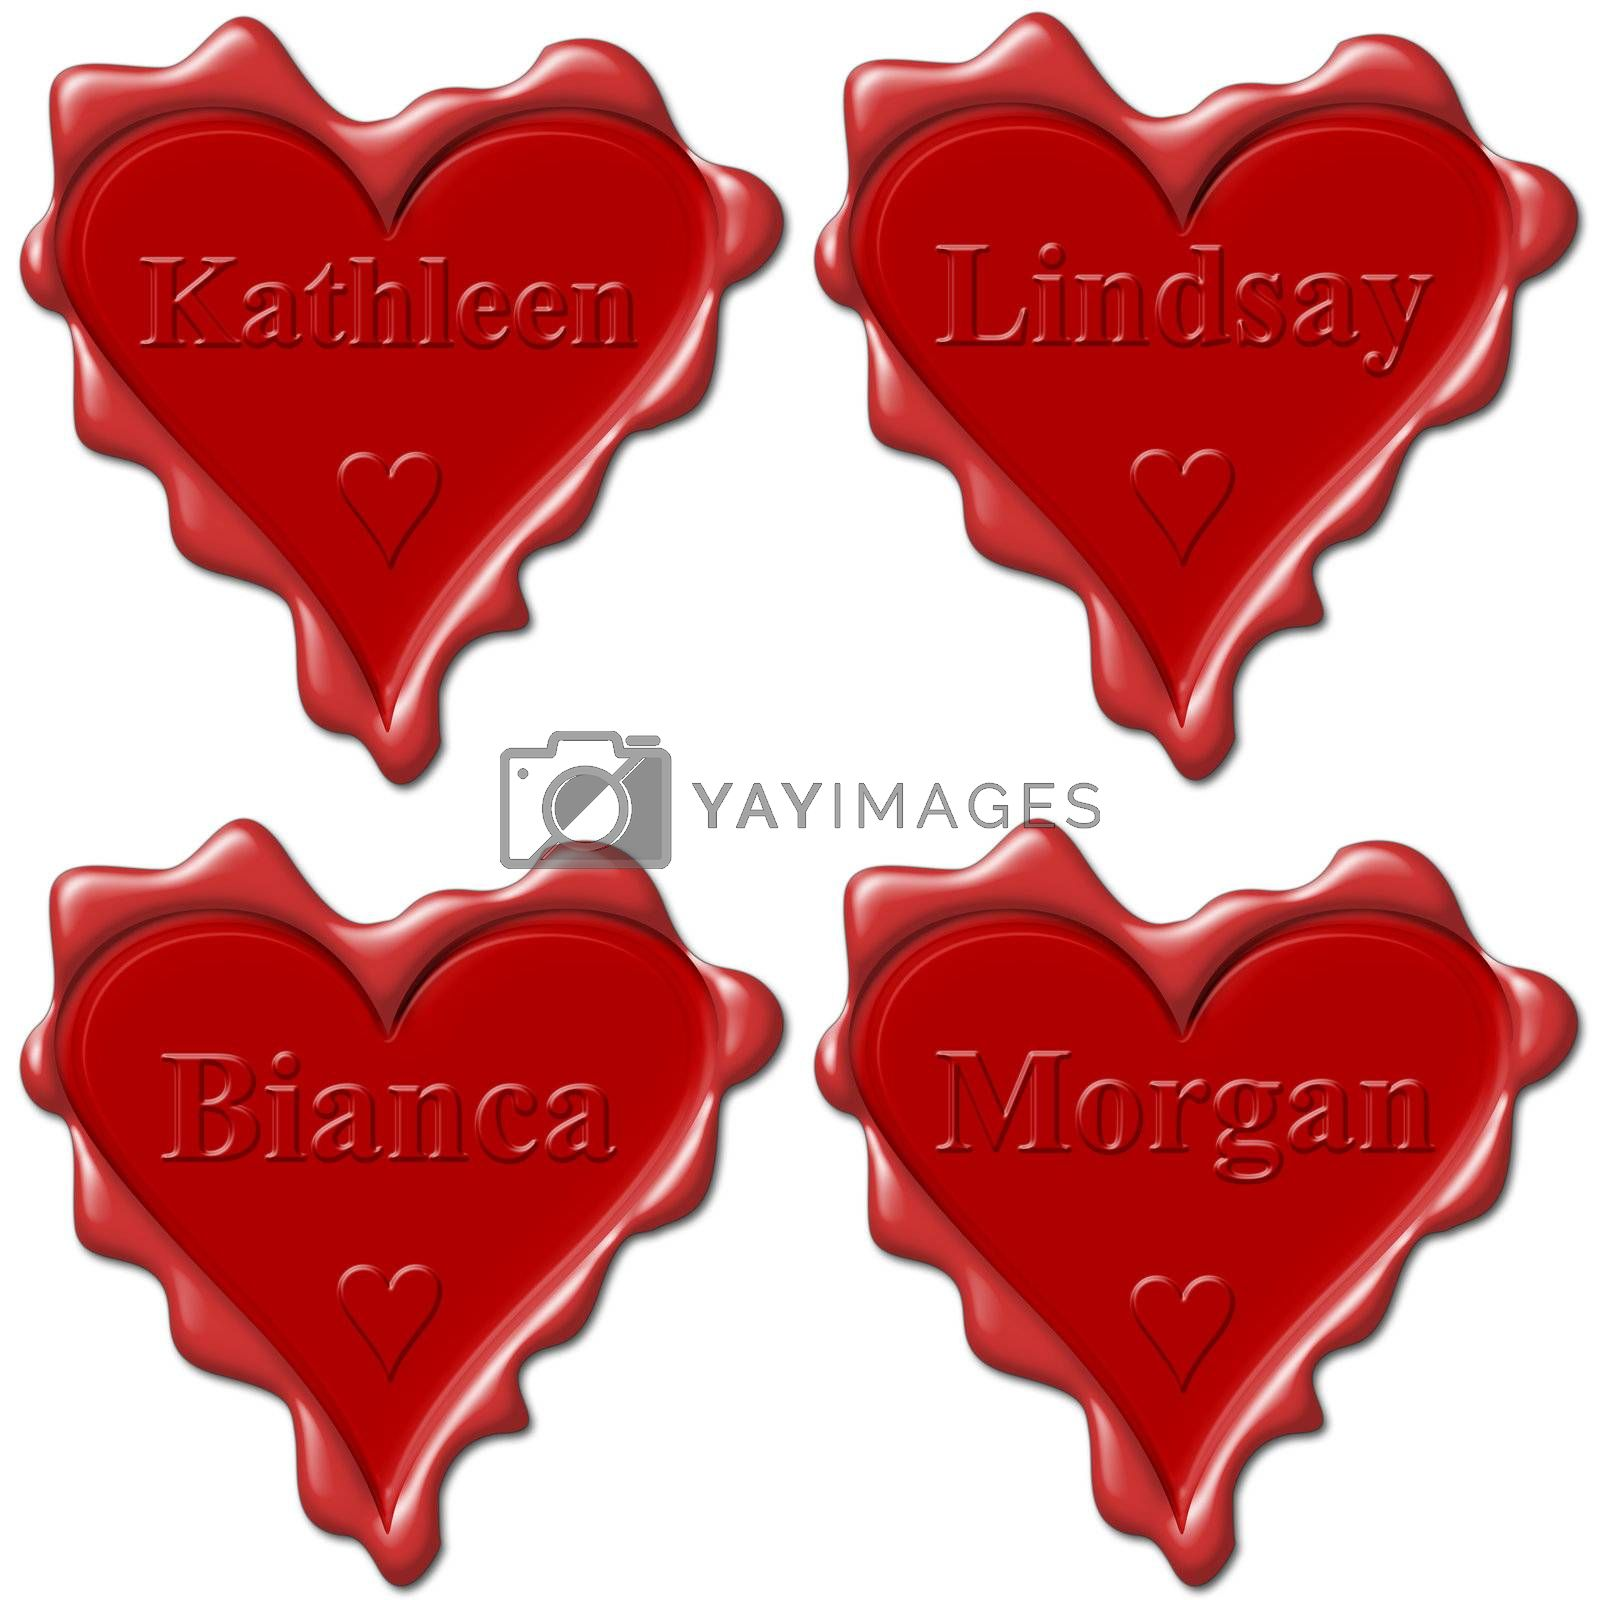 Valentine love hearts with names: Kathleen, Linsday, Bianca, Morgan